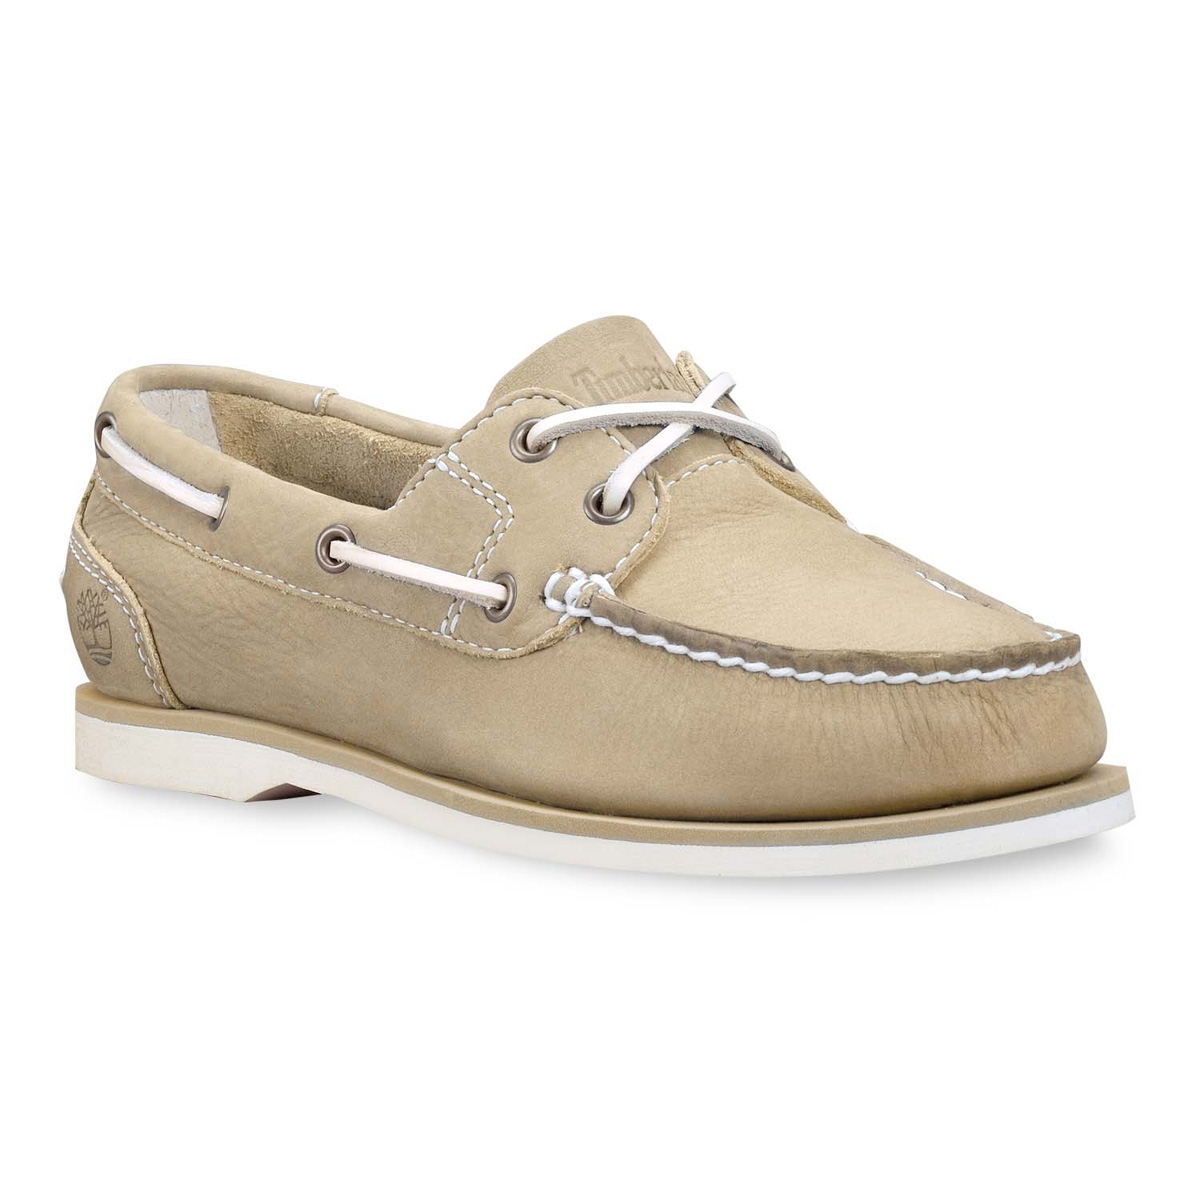 Image of Timberland Earthkeepers Classic Boat Unlined Boat Shoe (Women s) -  Light Tan a7bffbc81